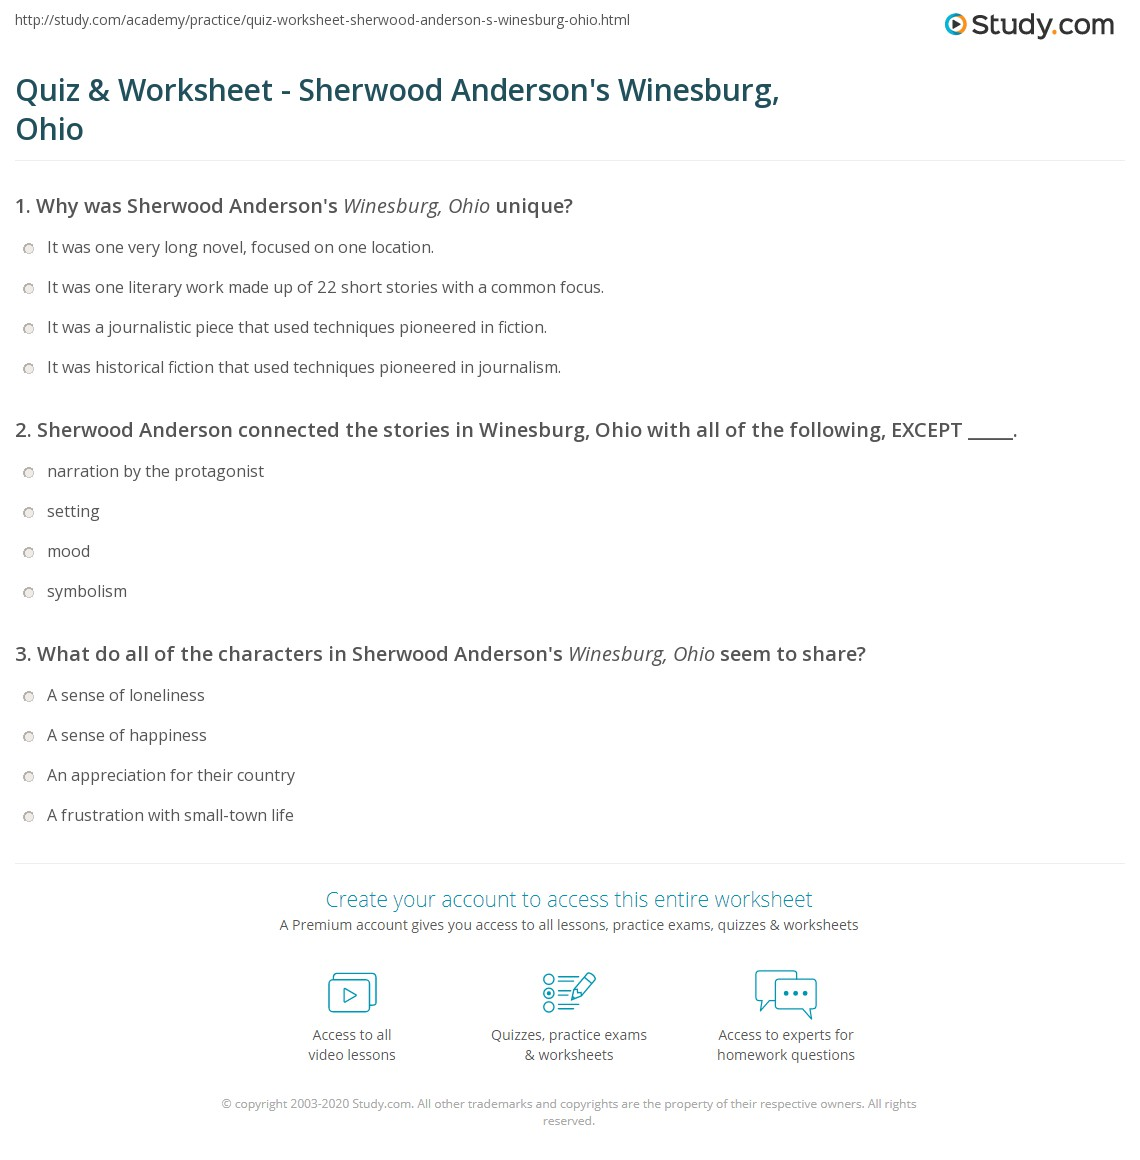 an analysis of the figures of winesburg ohio Get an answer for 'what is the main theme of sherwood anderson's book winesburg, ohio' and find homework help for other winesburg, ohio questions at enotes.